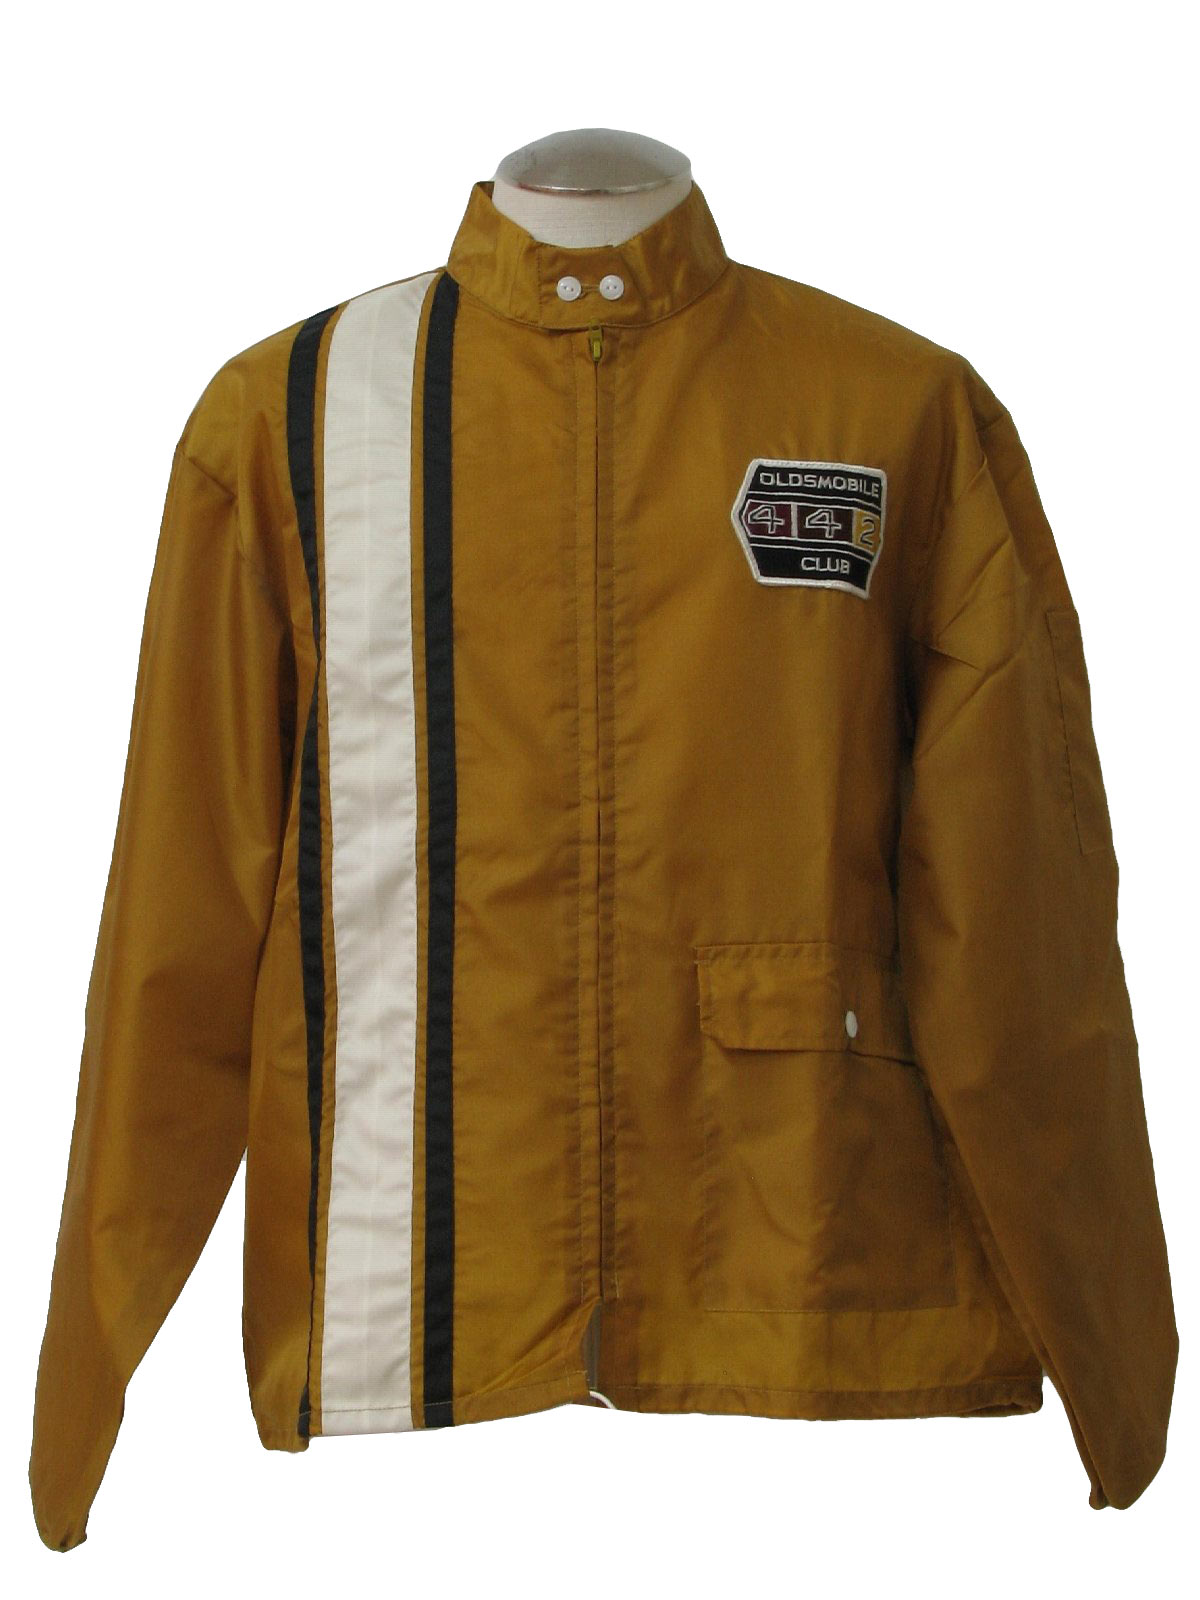 Vintage 1960s Jacket Late 60s or early 70s Anton Racing